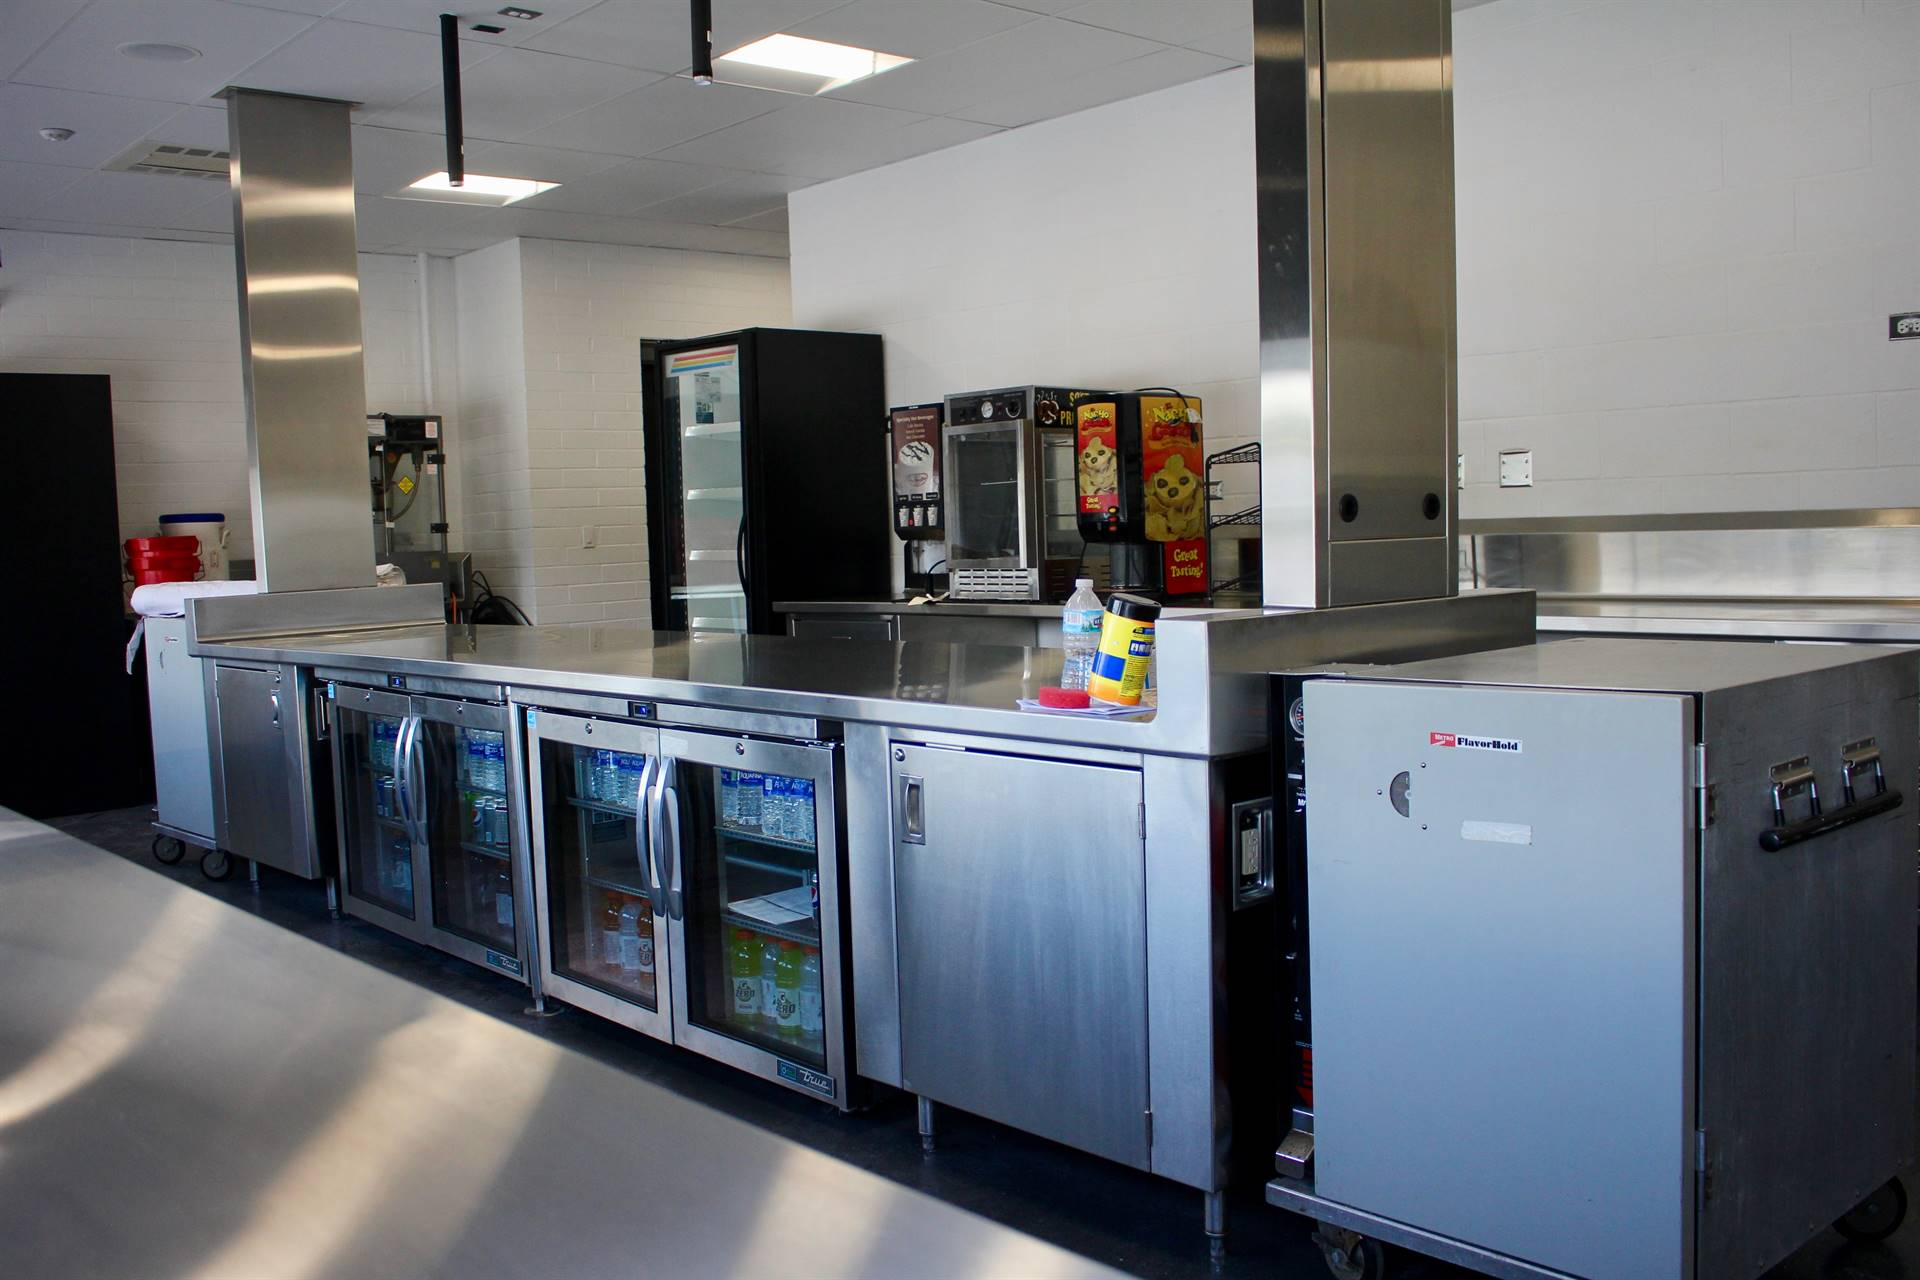 Equipment inside the concession stand